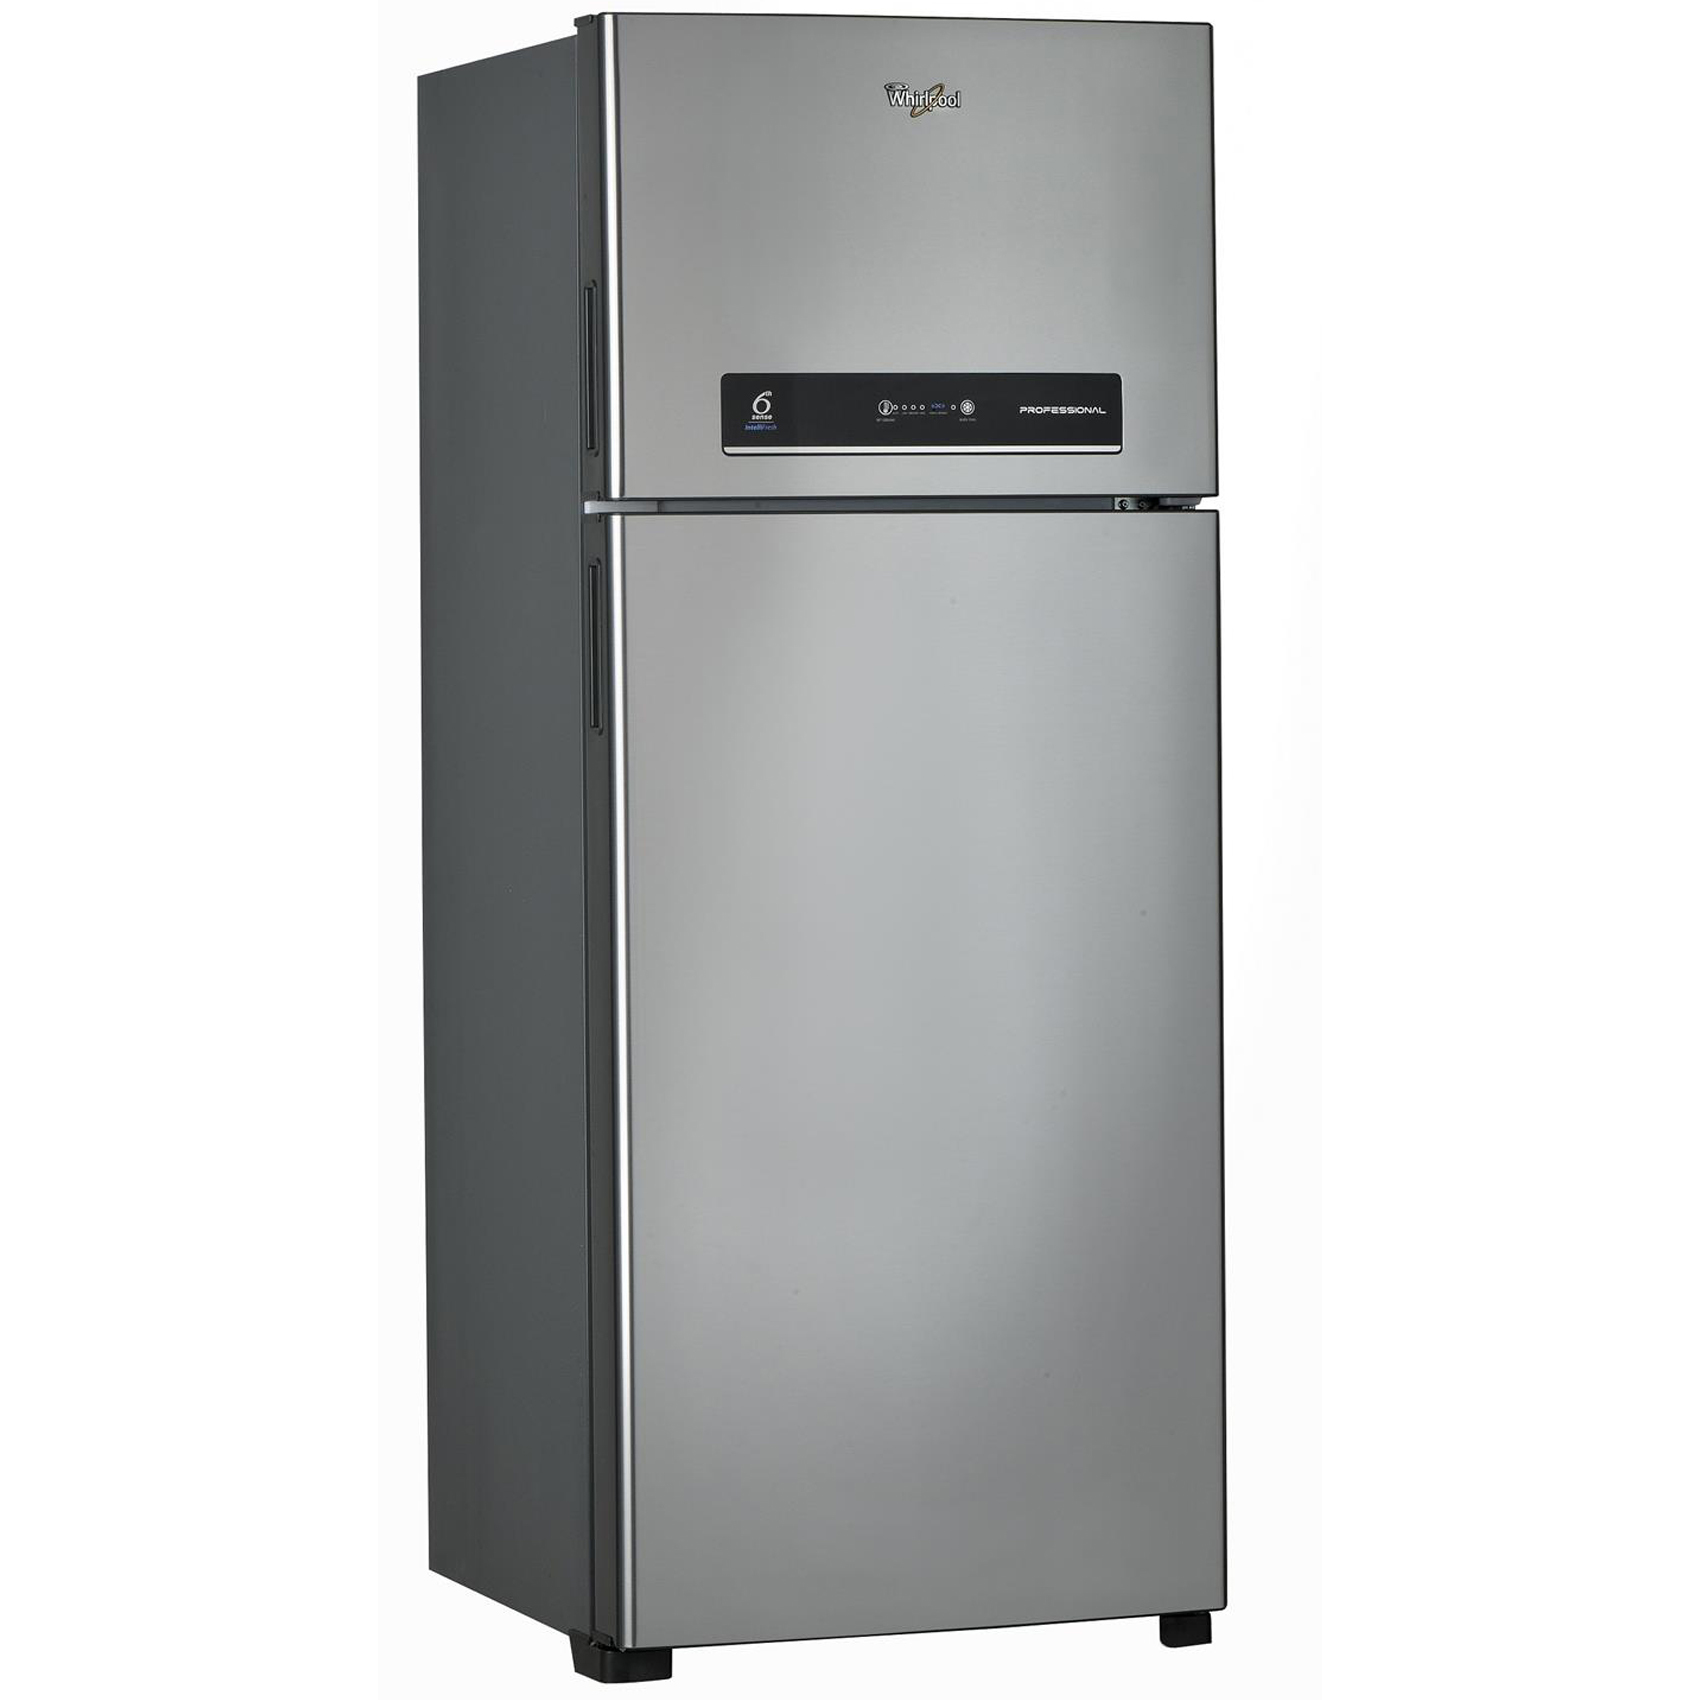 WHIRLPOOL FRIDGE WTM557 SS 557L